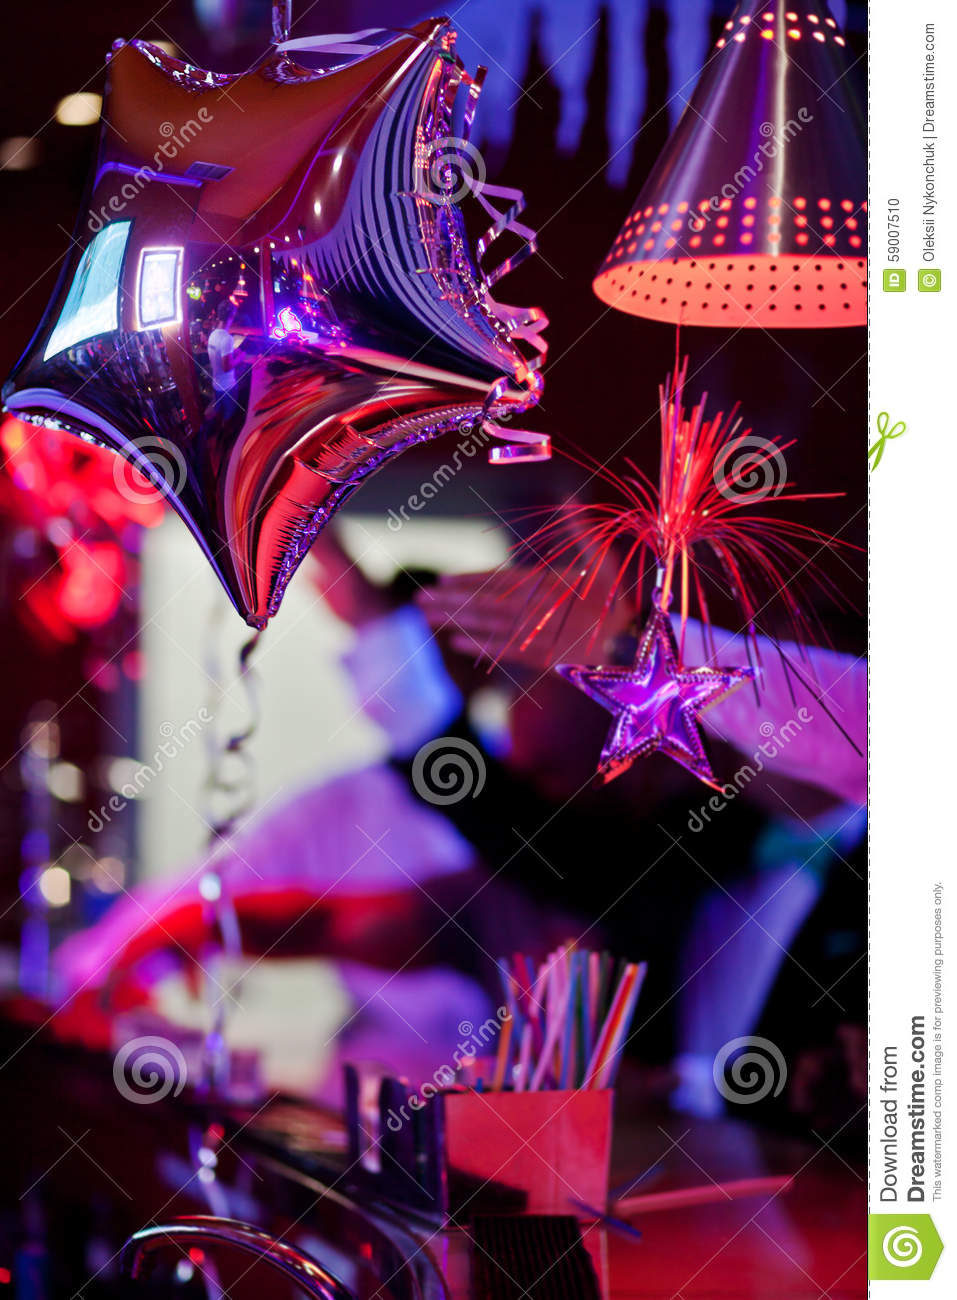 Decor In A Nightclub On Bar With Silver Star Stock Photo